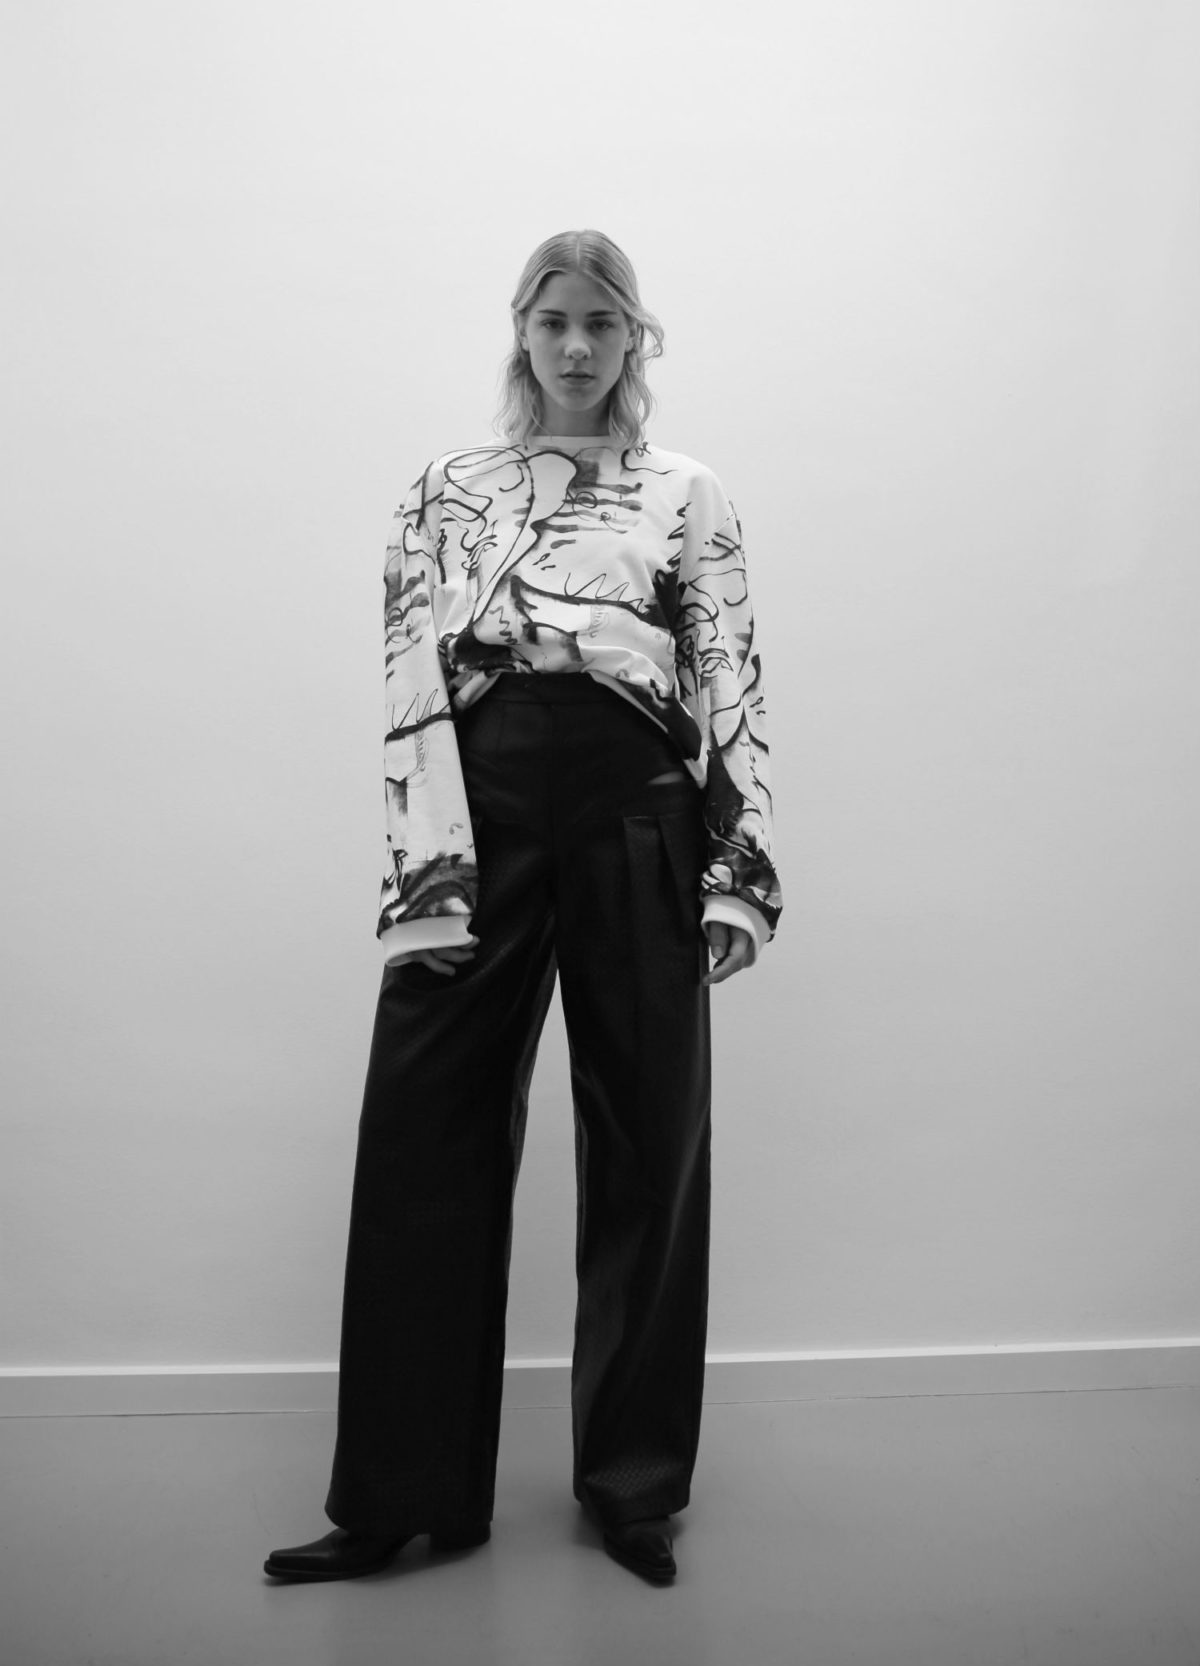 SPEAKING GARMENTS LAUNCH NEW CAPSULE COLLECTION WITH ARTIST JAN-OLE SCHIEMANN